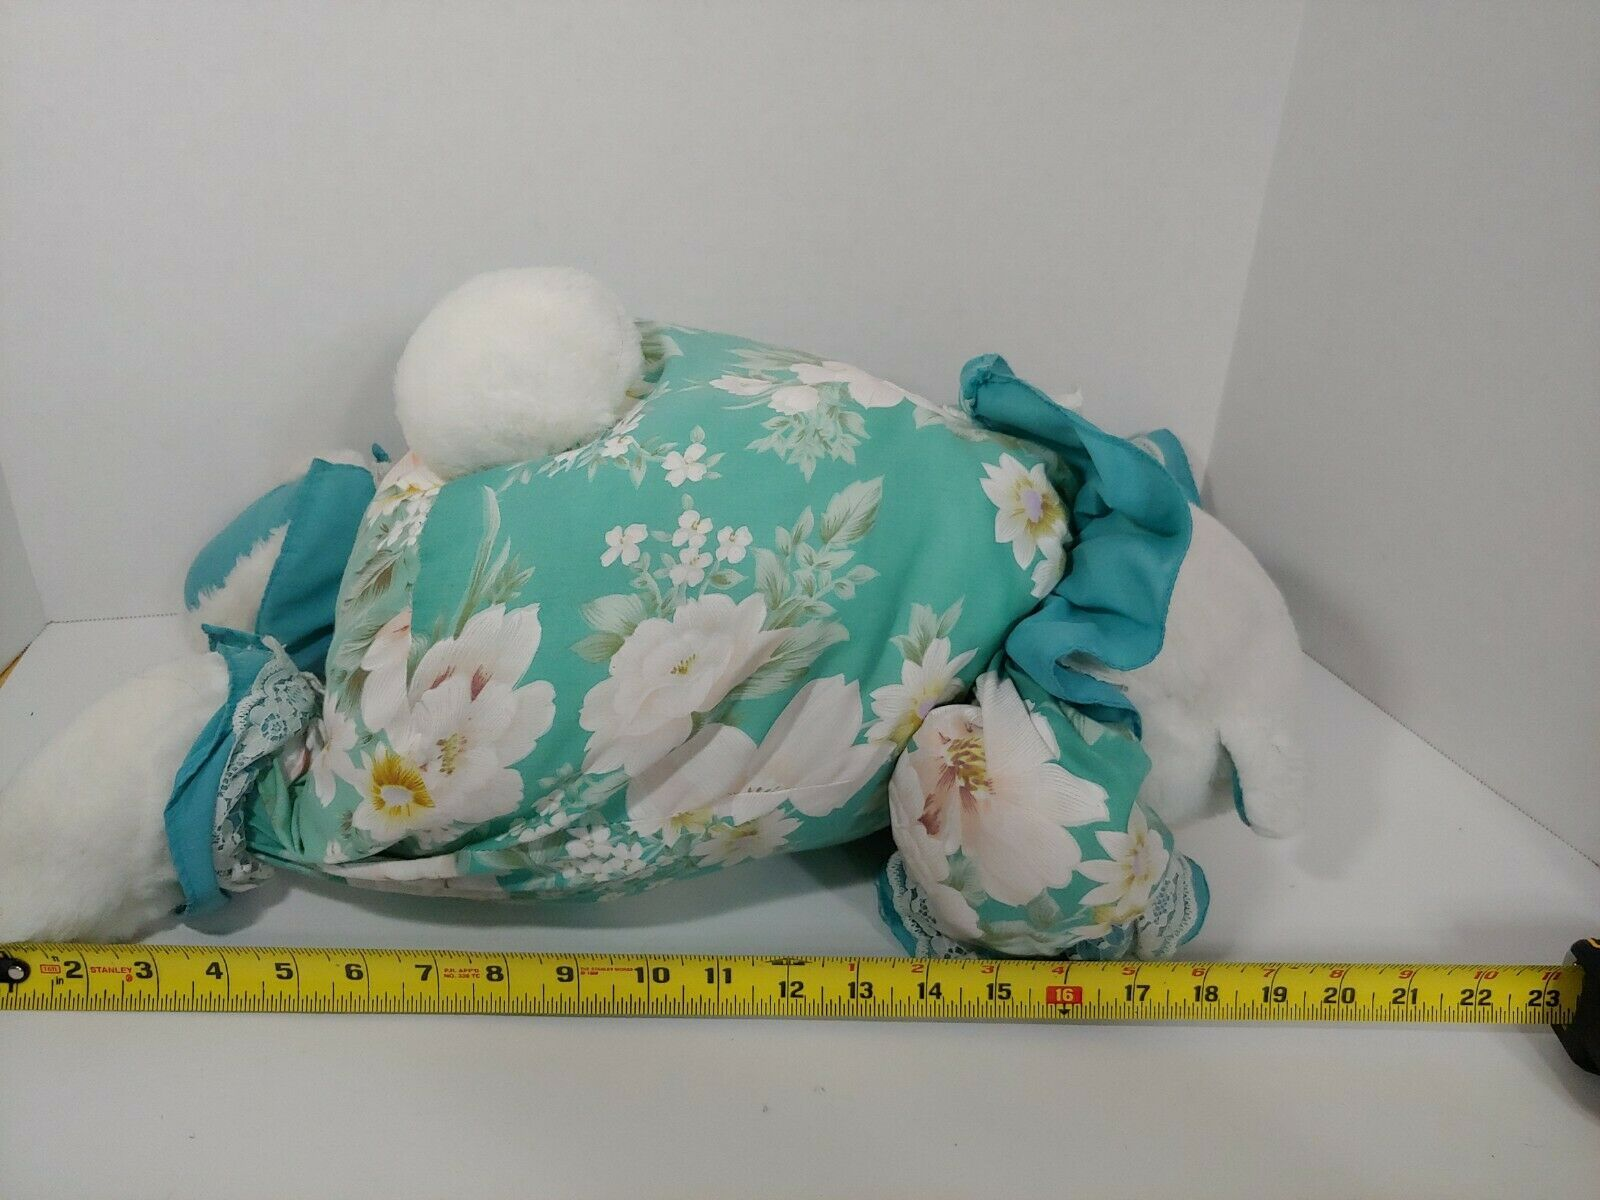 Enesco Plush white teddy bear green floral flowers outfit lace collar pink nose image 10